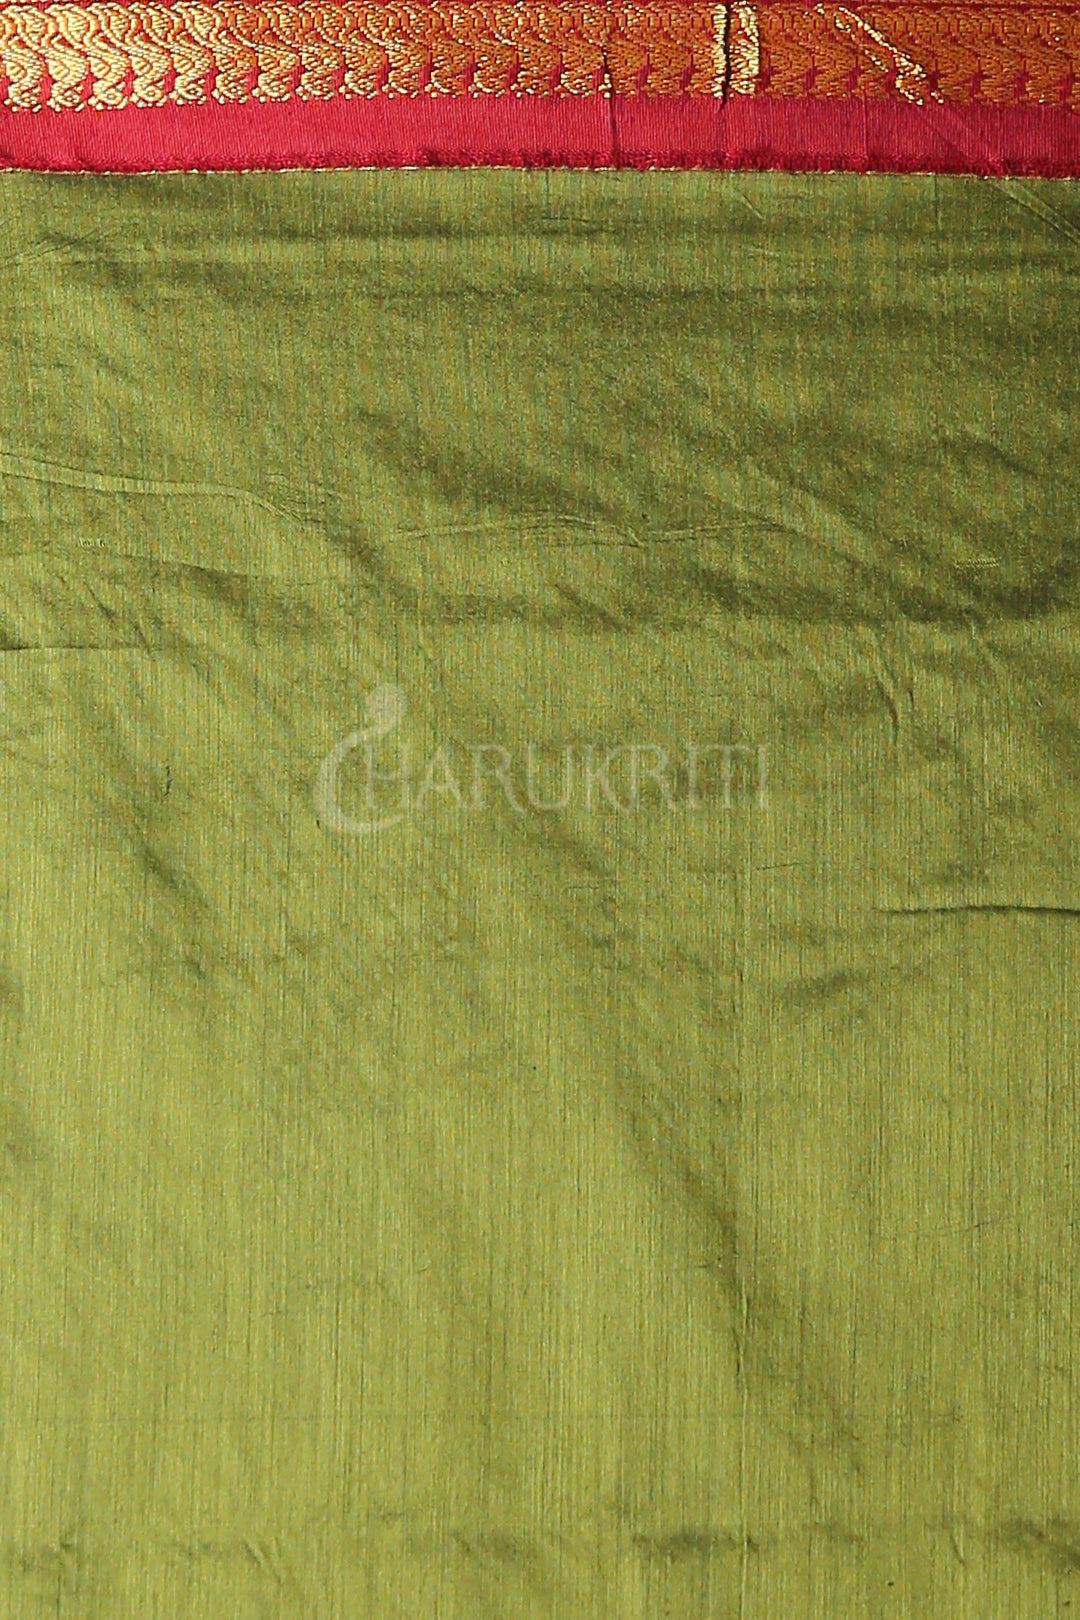 MOSS GREEN GARDWAL SAREE WITH MAROON ZARI BORDER AND PALLU